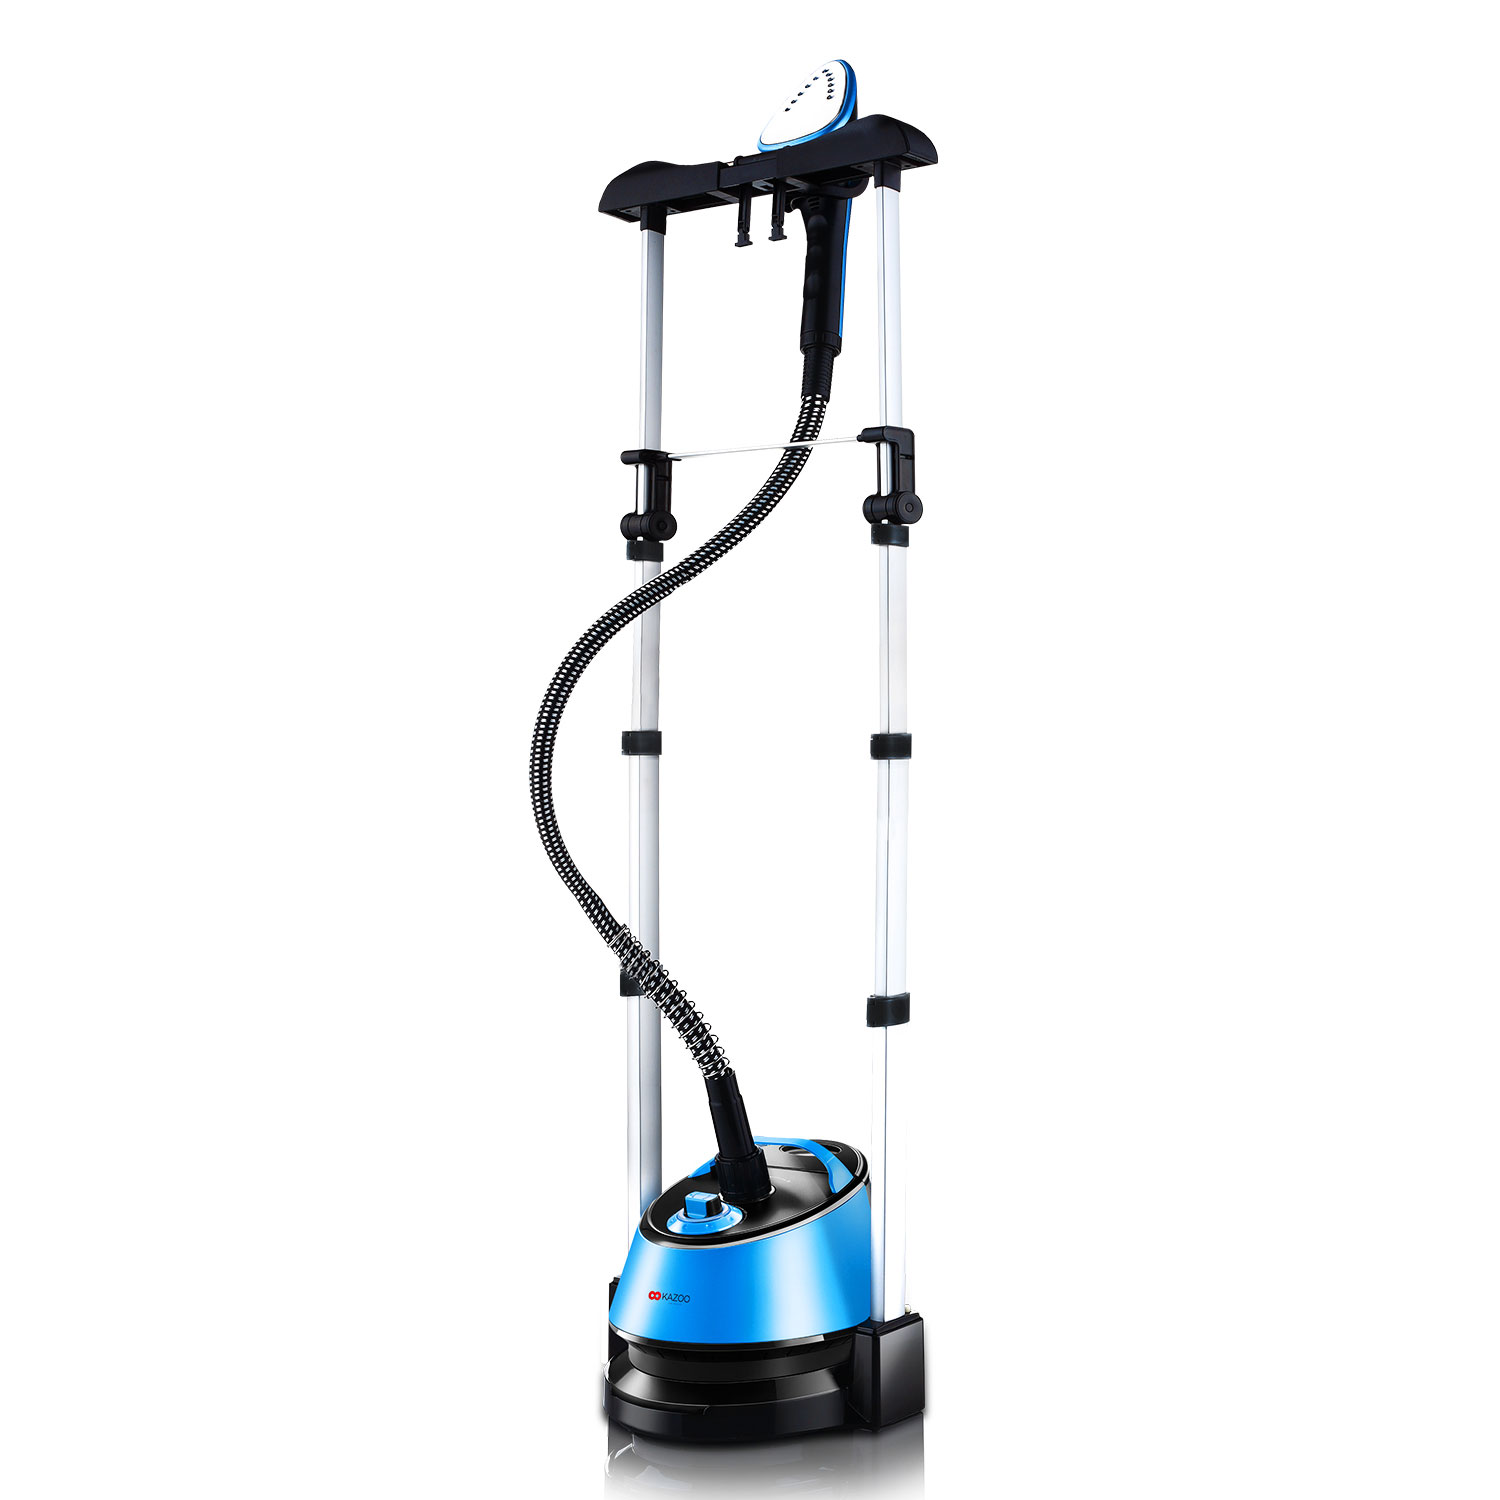 Kazoo 1580W 46 oz. Professional Dual Bar Garment Steamer by Kazoo